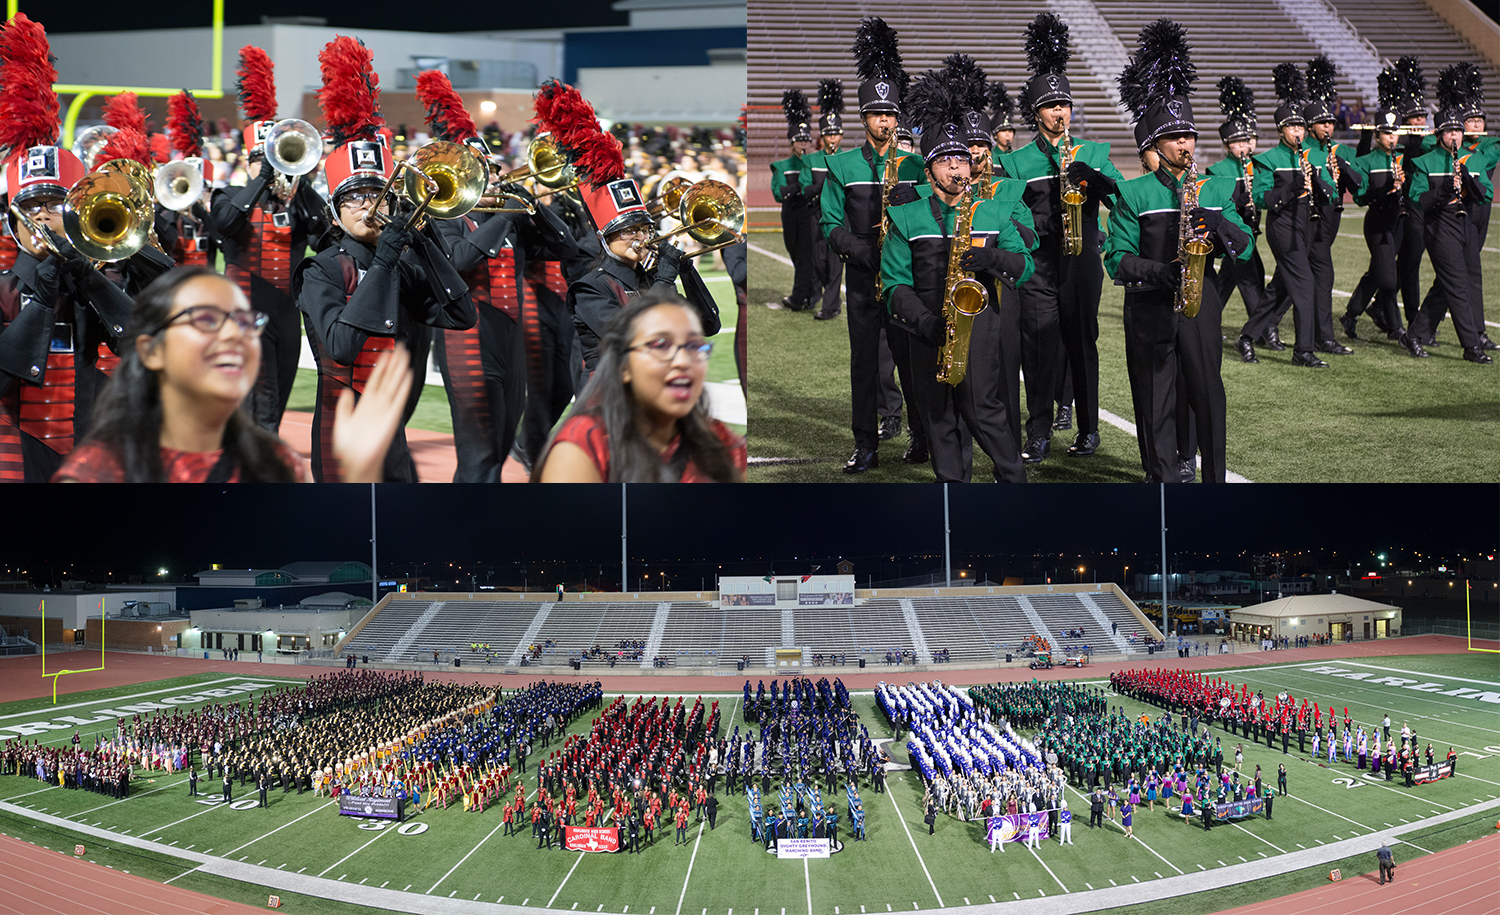 HHS and South bands earn Division 1 ratings at 75th Pigskin Jubilee